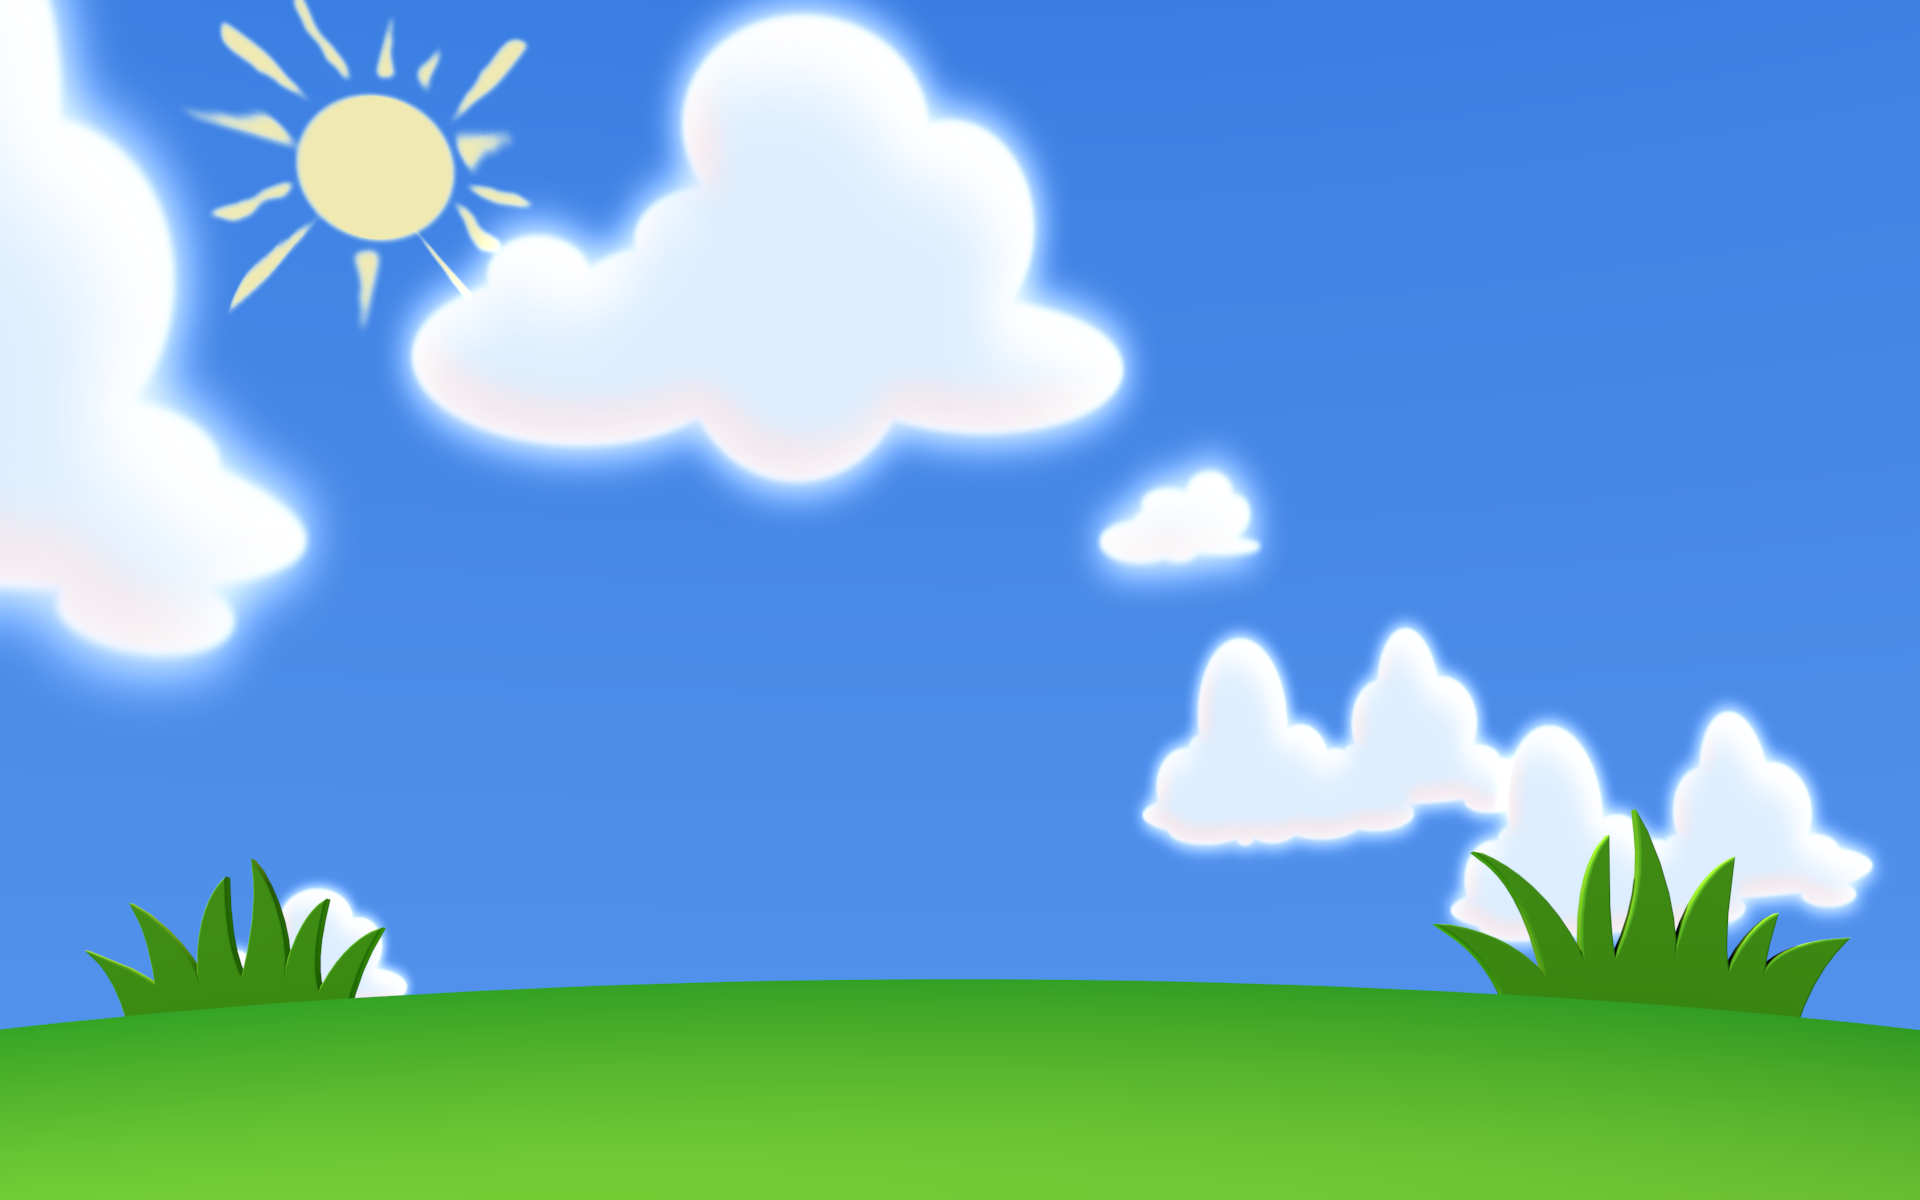 Background clipart #2